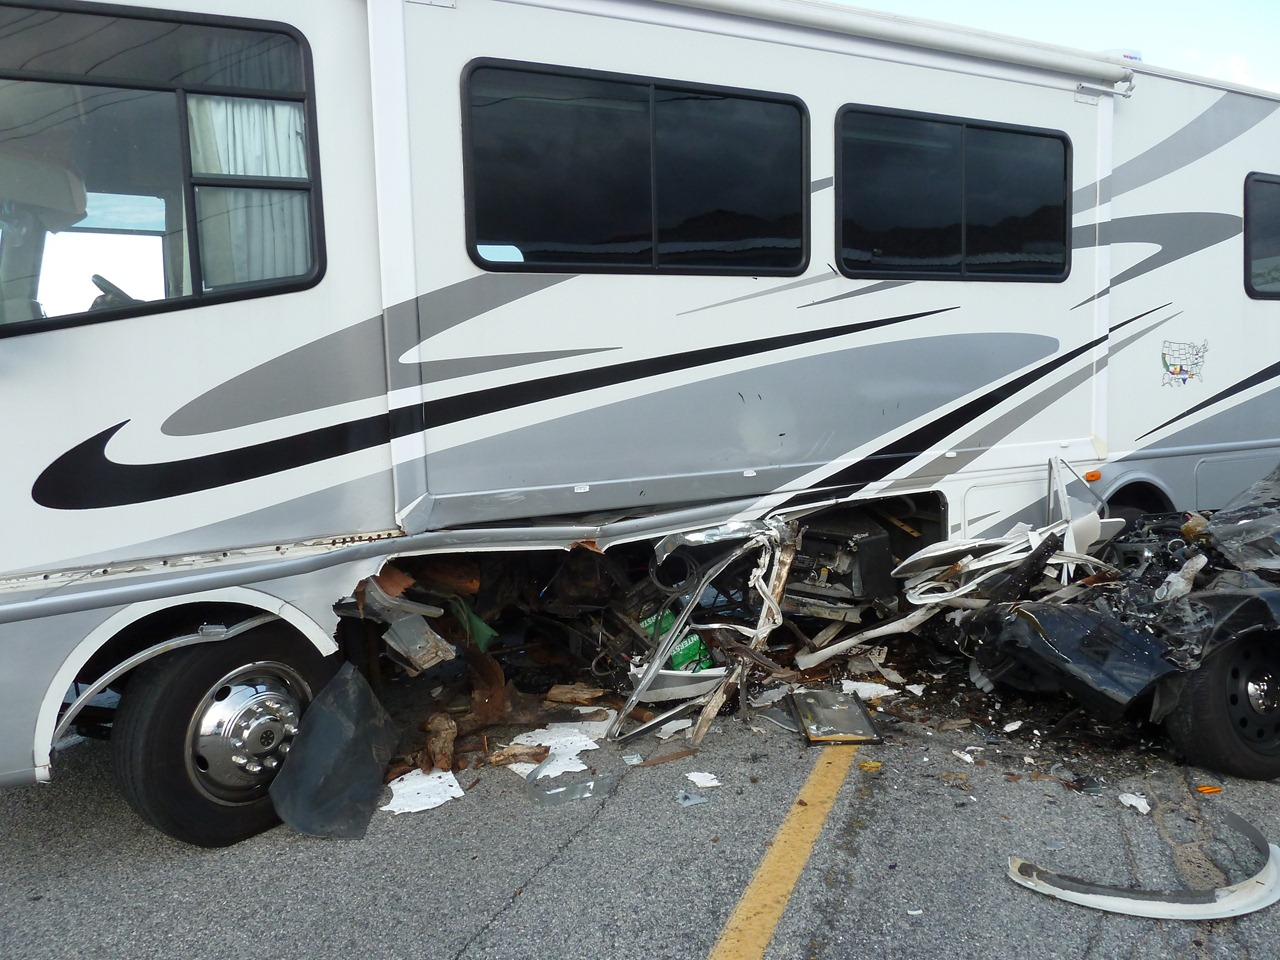 chassis of rv damaged from crash